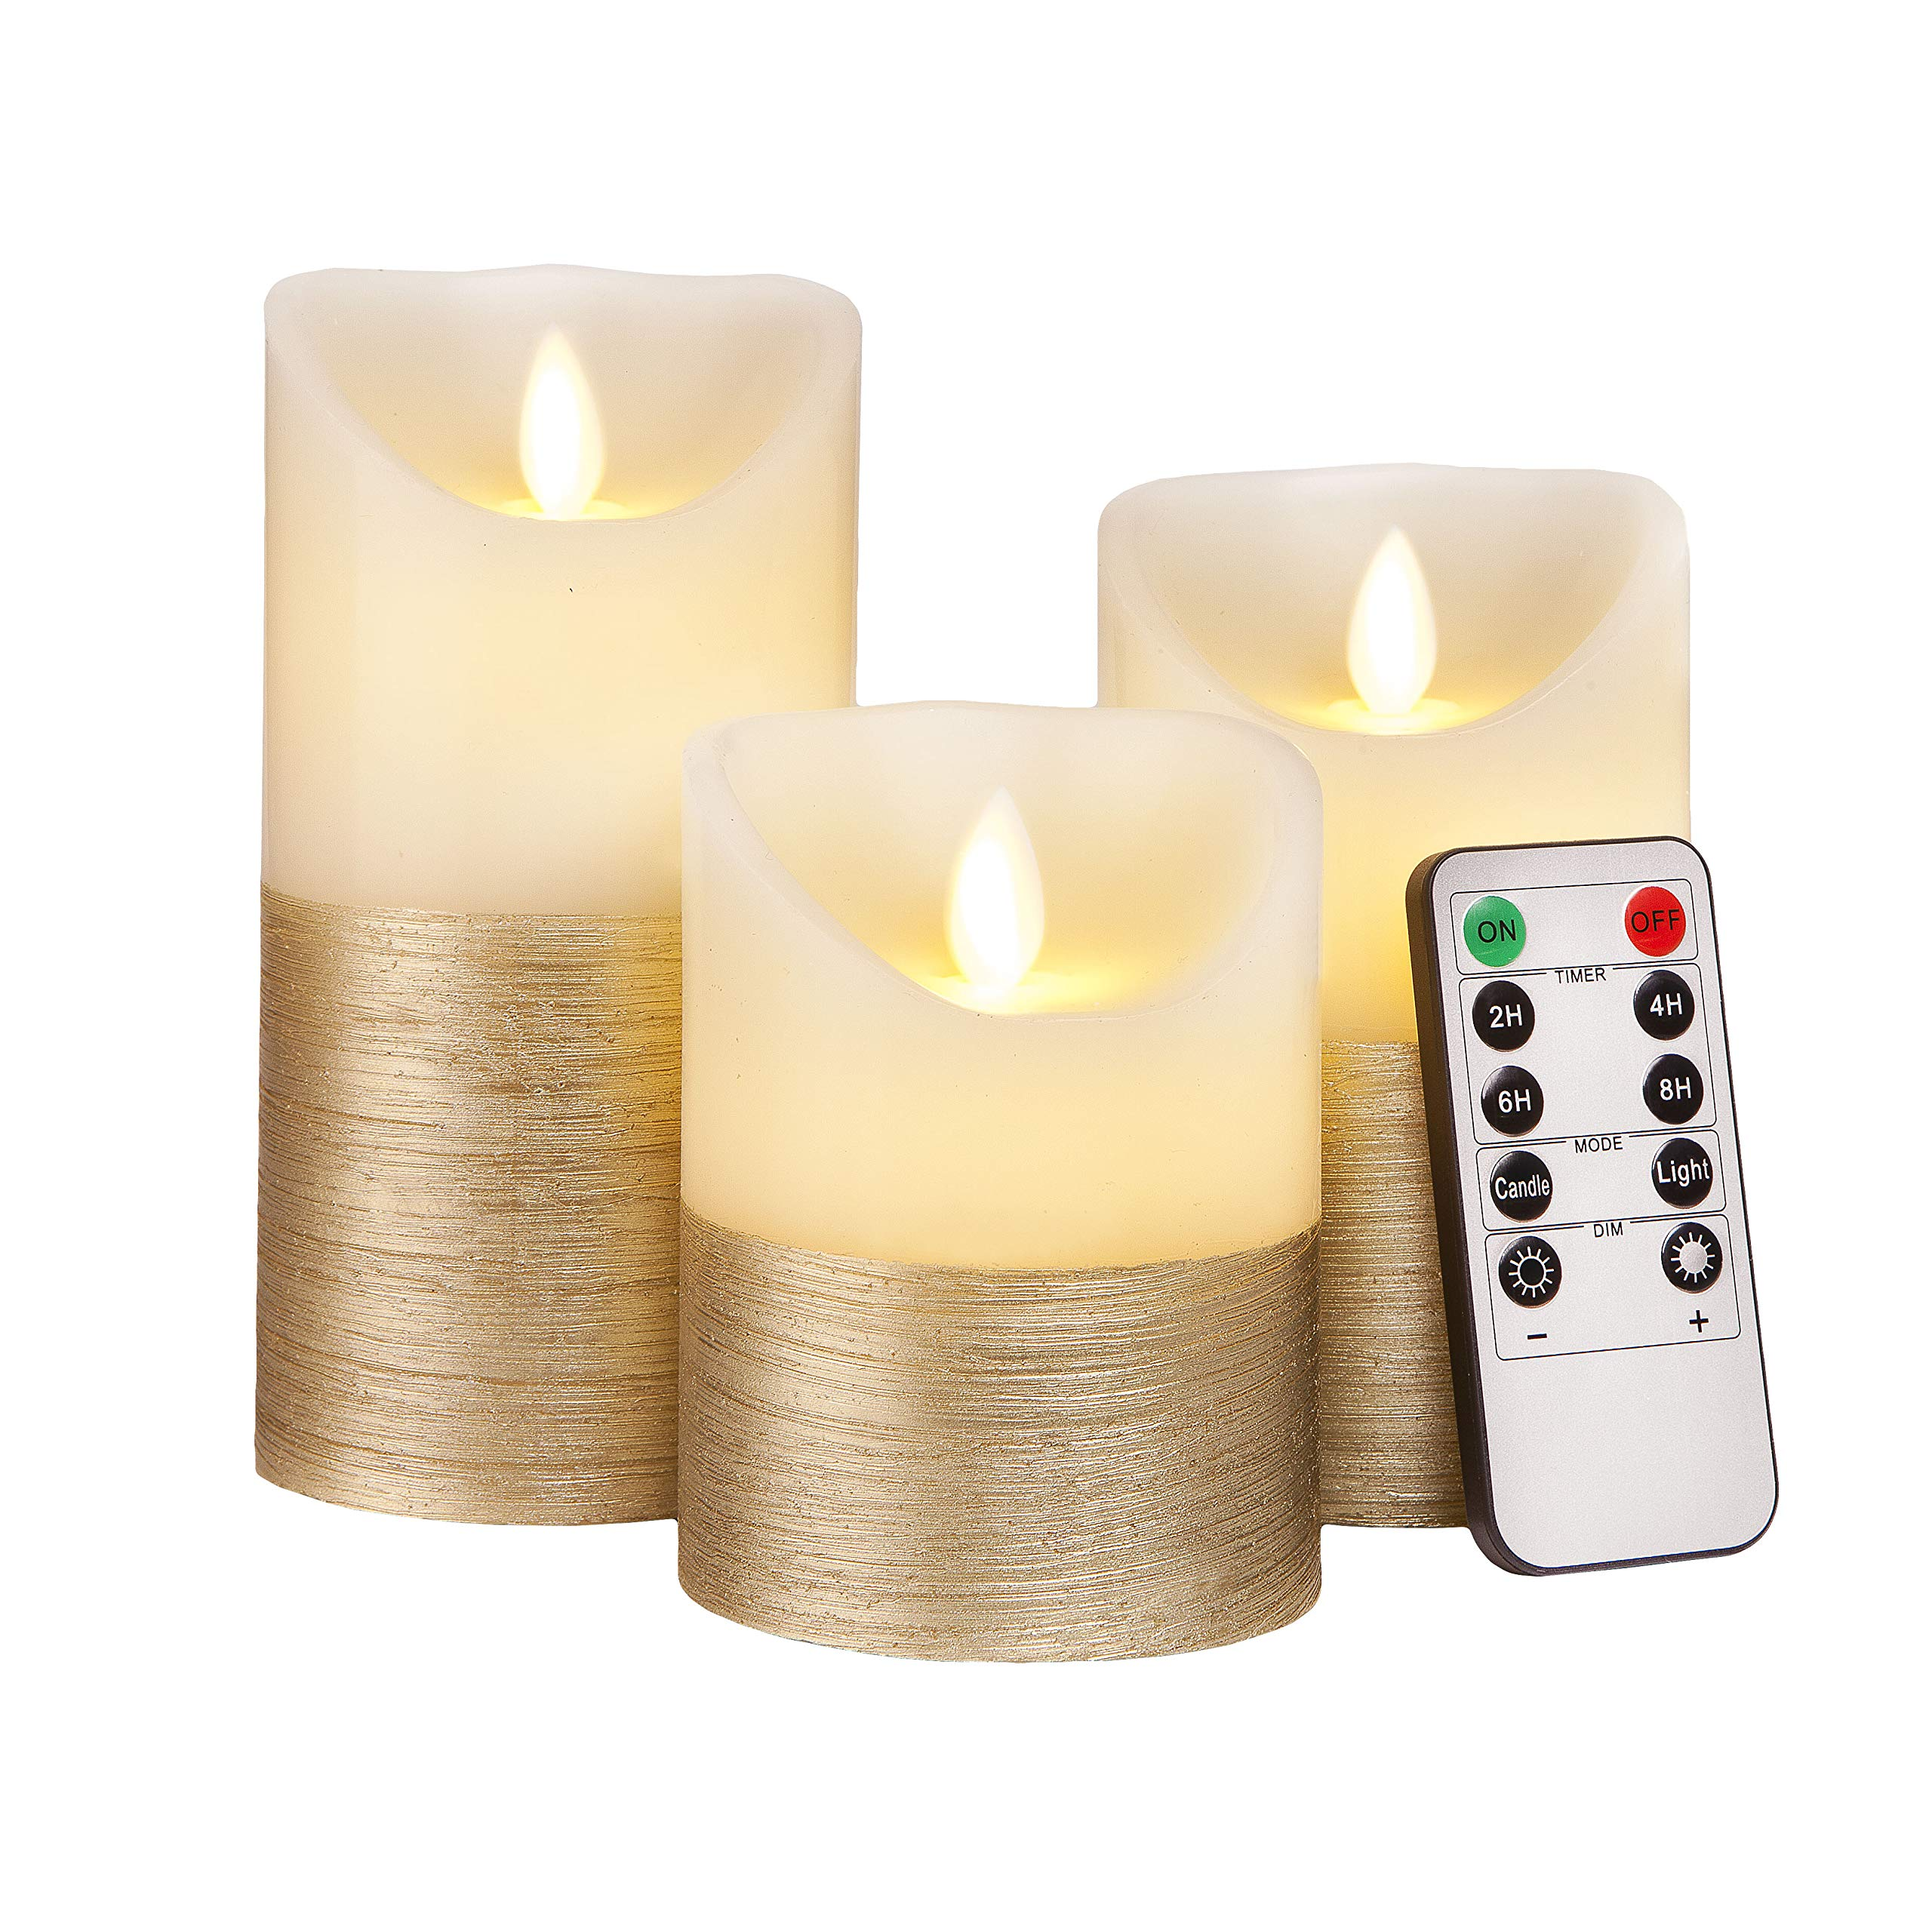 Flameless Dancing Flame Flickering Candle with Timer 3 sizes available